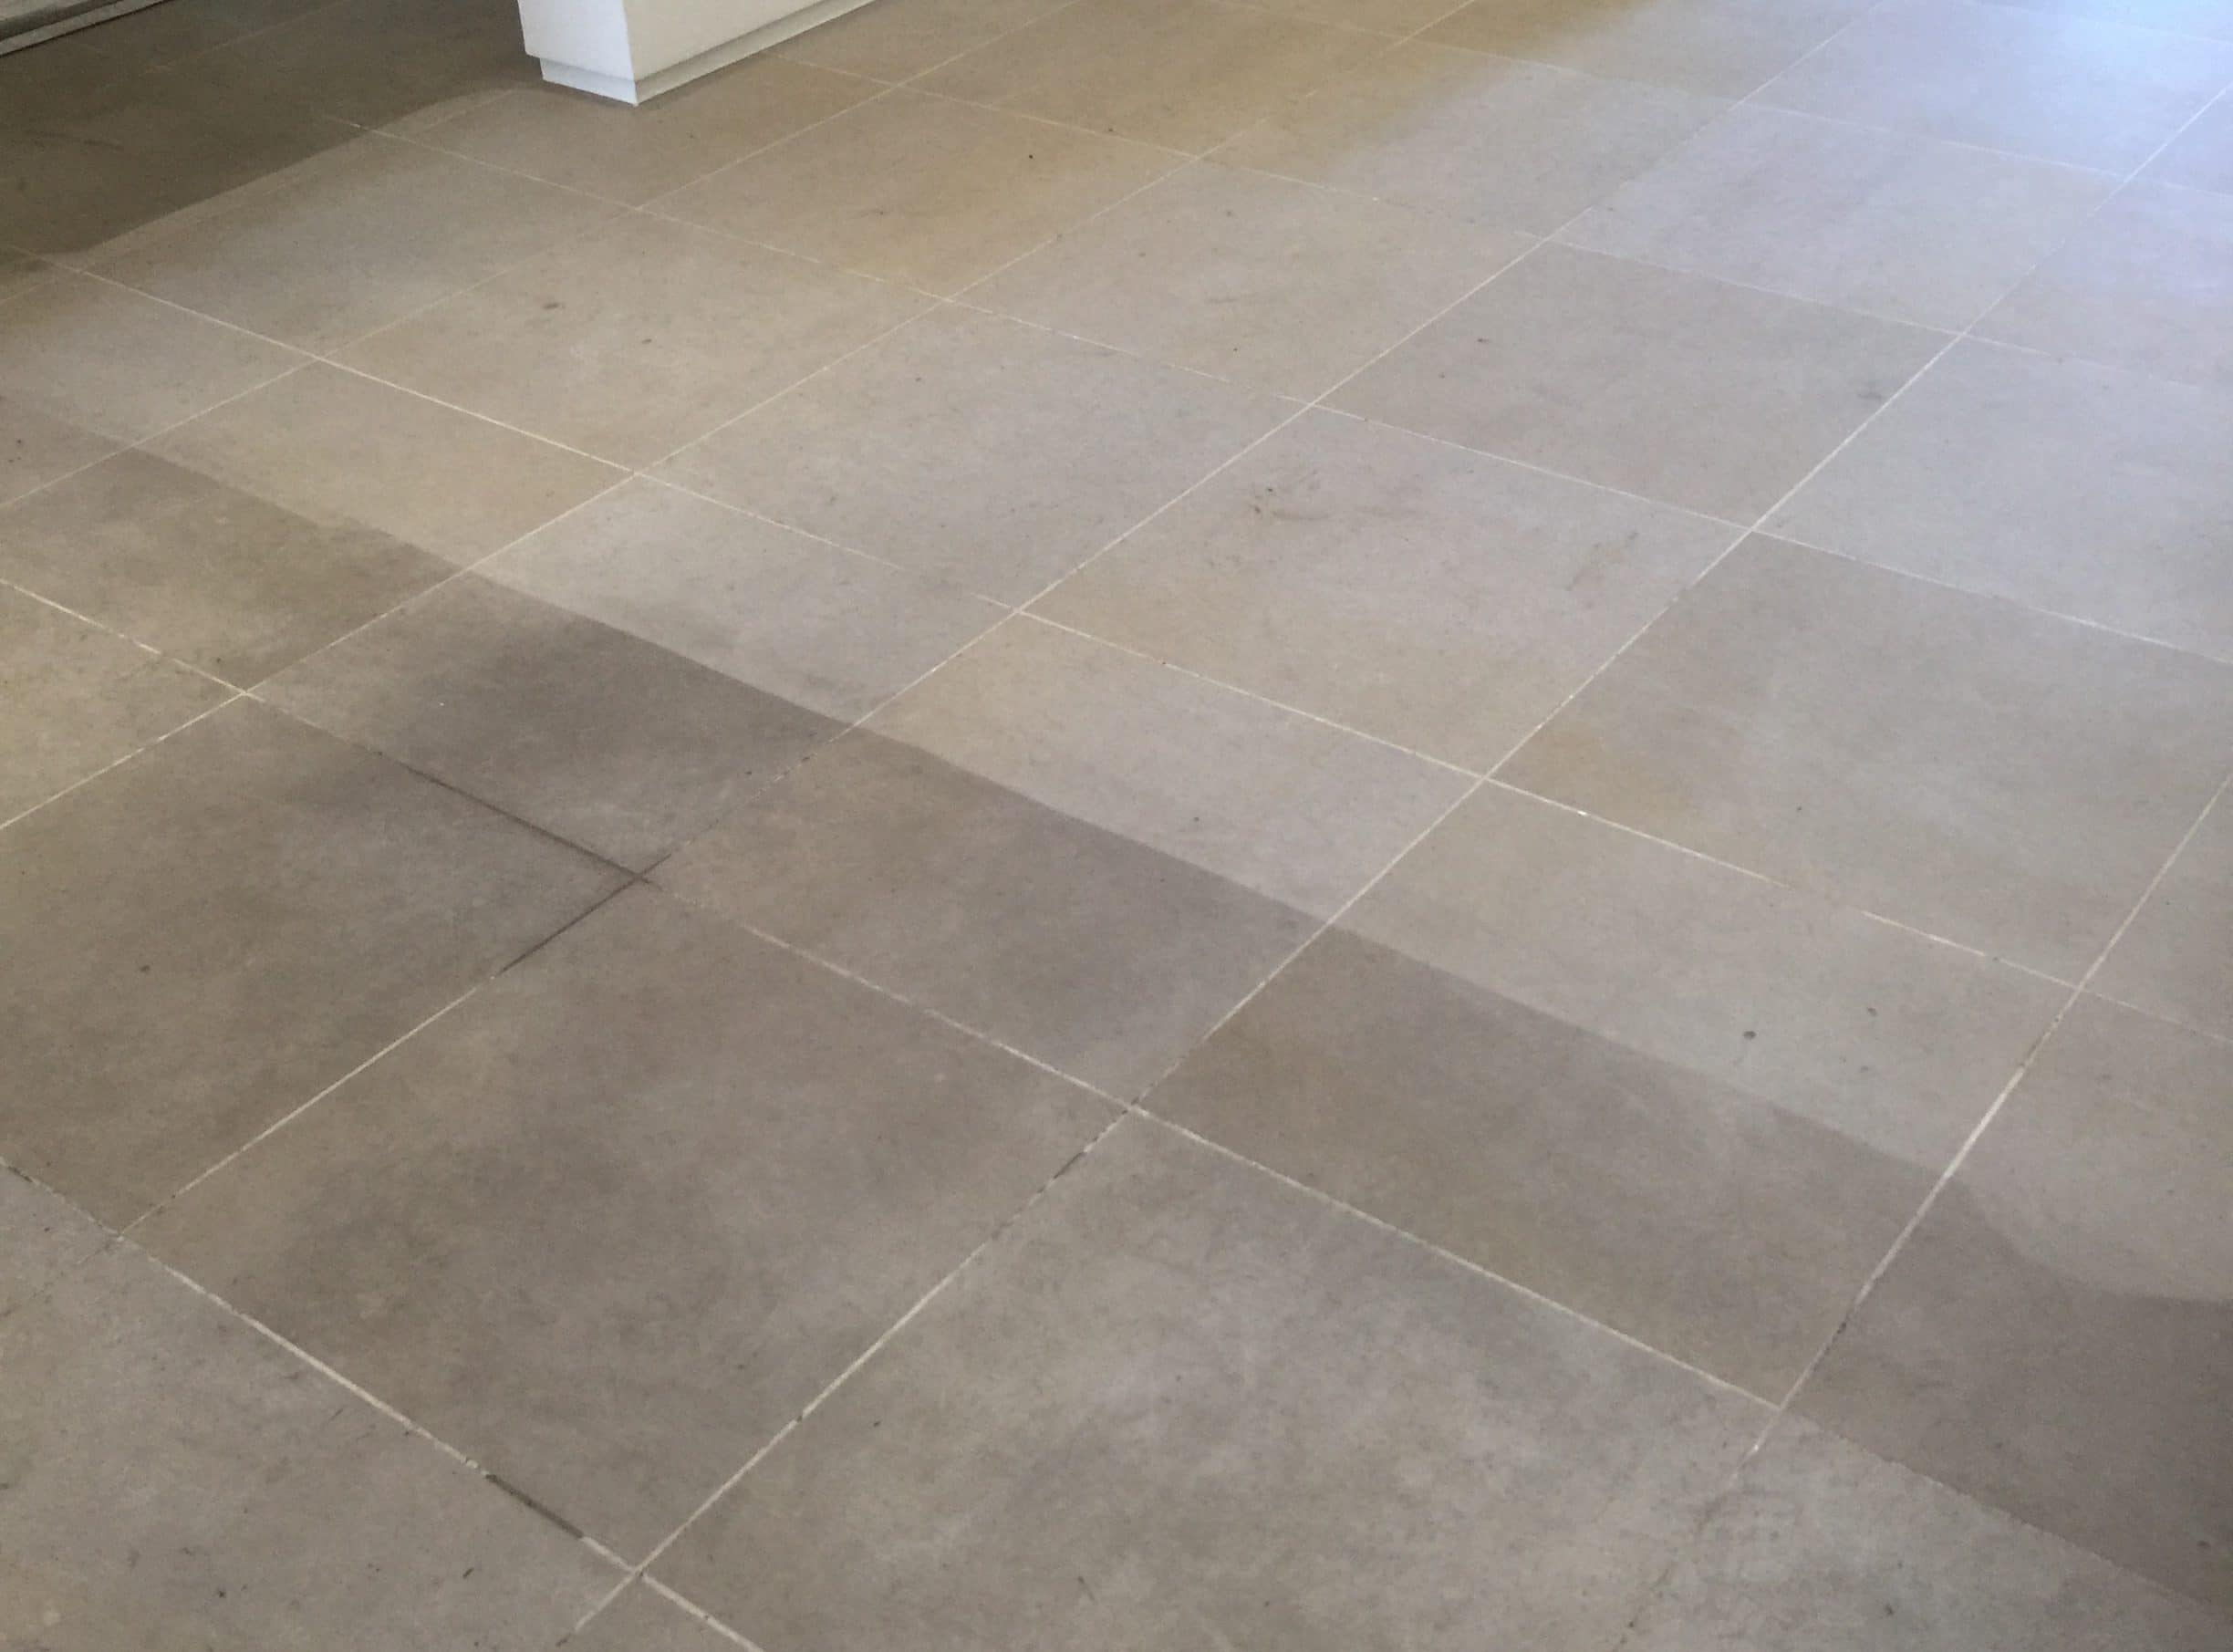 Tile and Grout Cleaning Before and After Dallas, TX